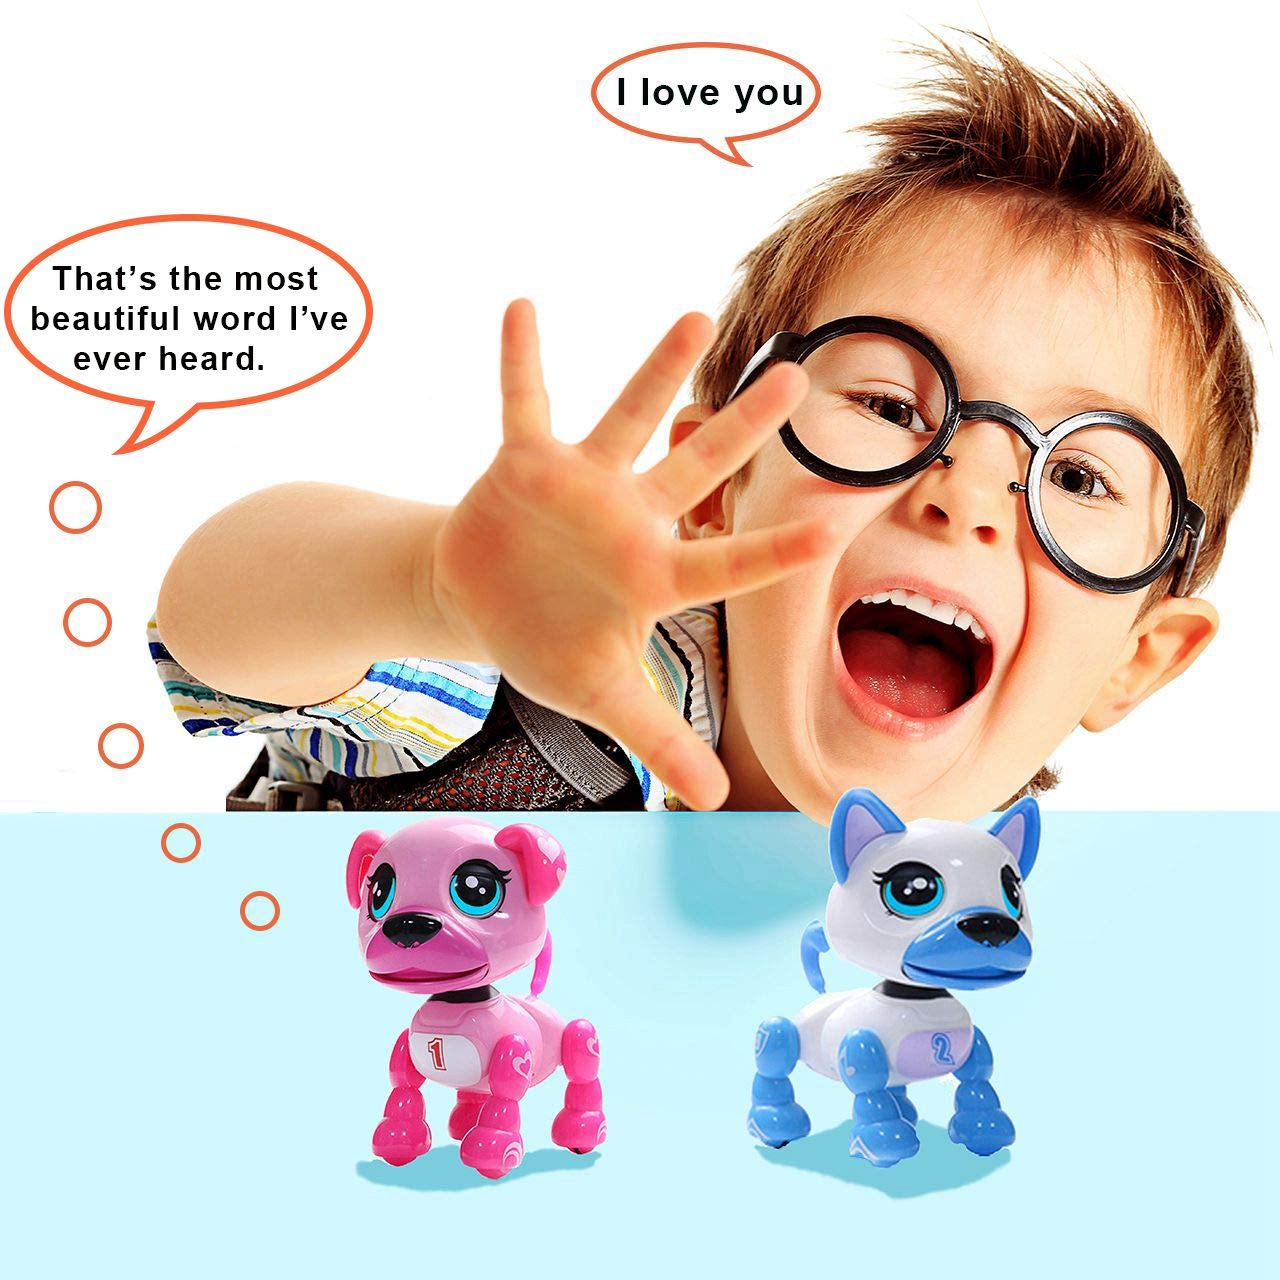 amdohai Interactive Puppy - Smart Pet, Electronic Robot Dog Toys for Age 3 4 5 6 7 8 Year Old Girls, Gifts Idea for Kids ● Voice Control&Intelligent Talking (Pink) by amdohai (Image #2)